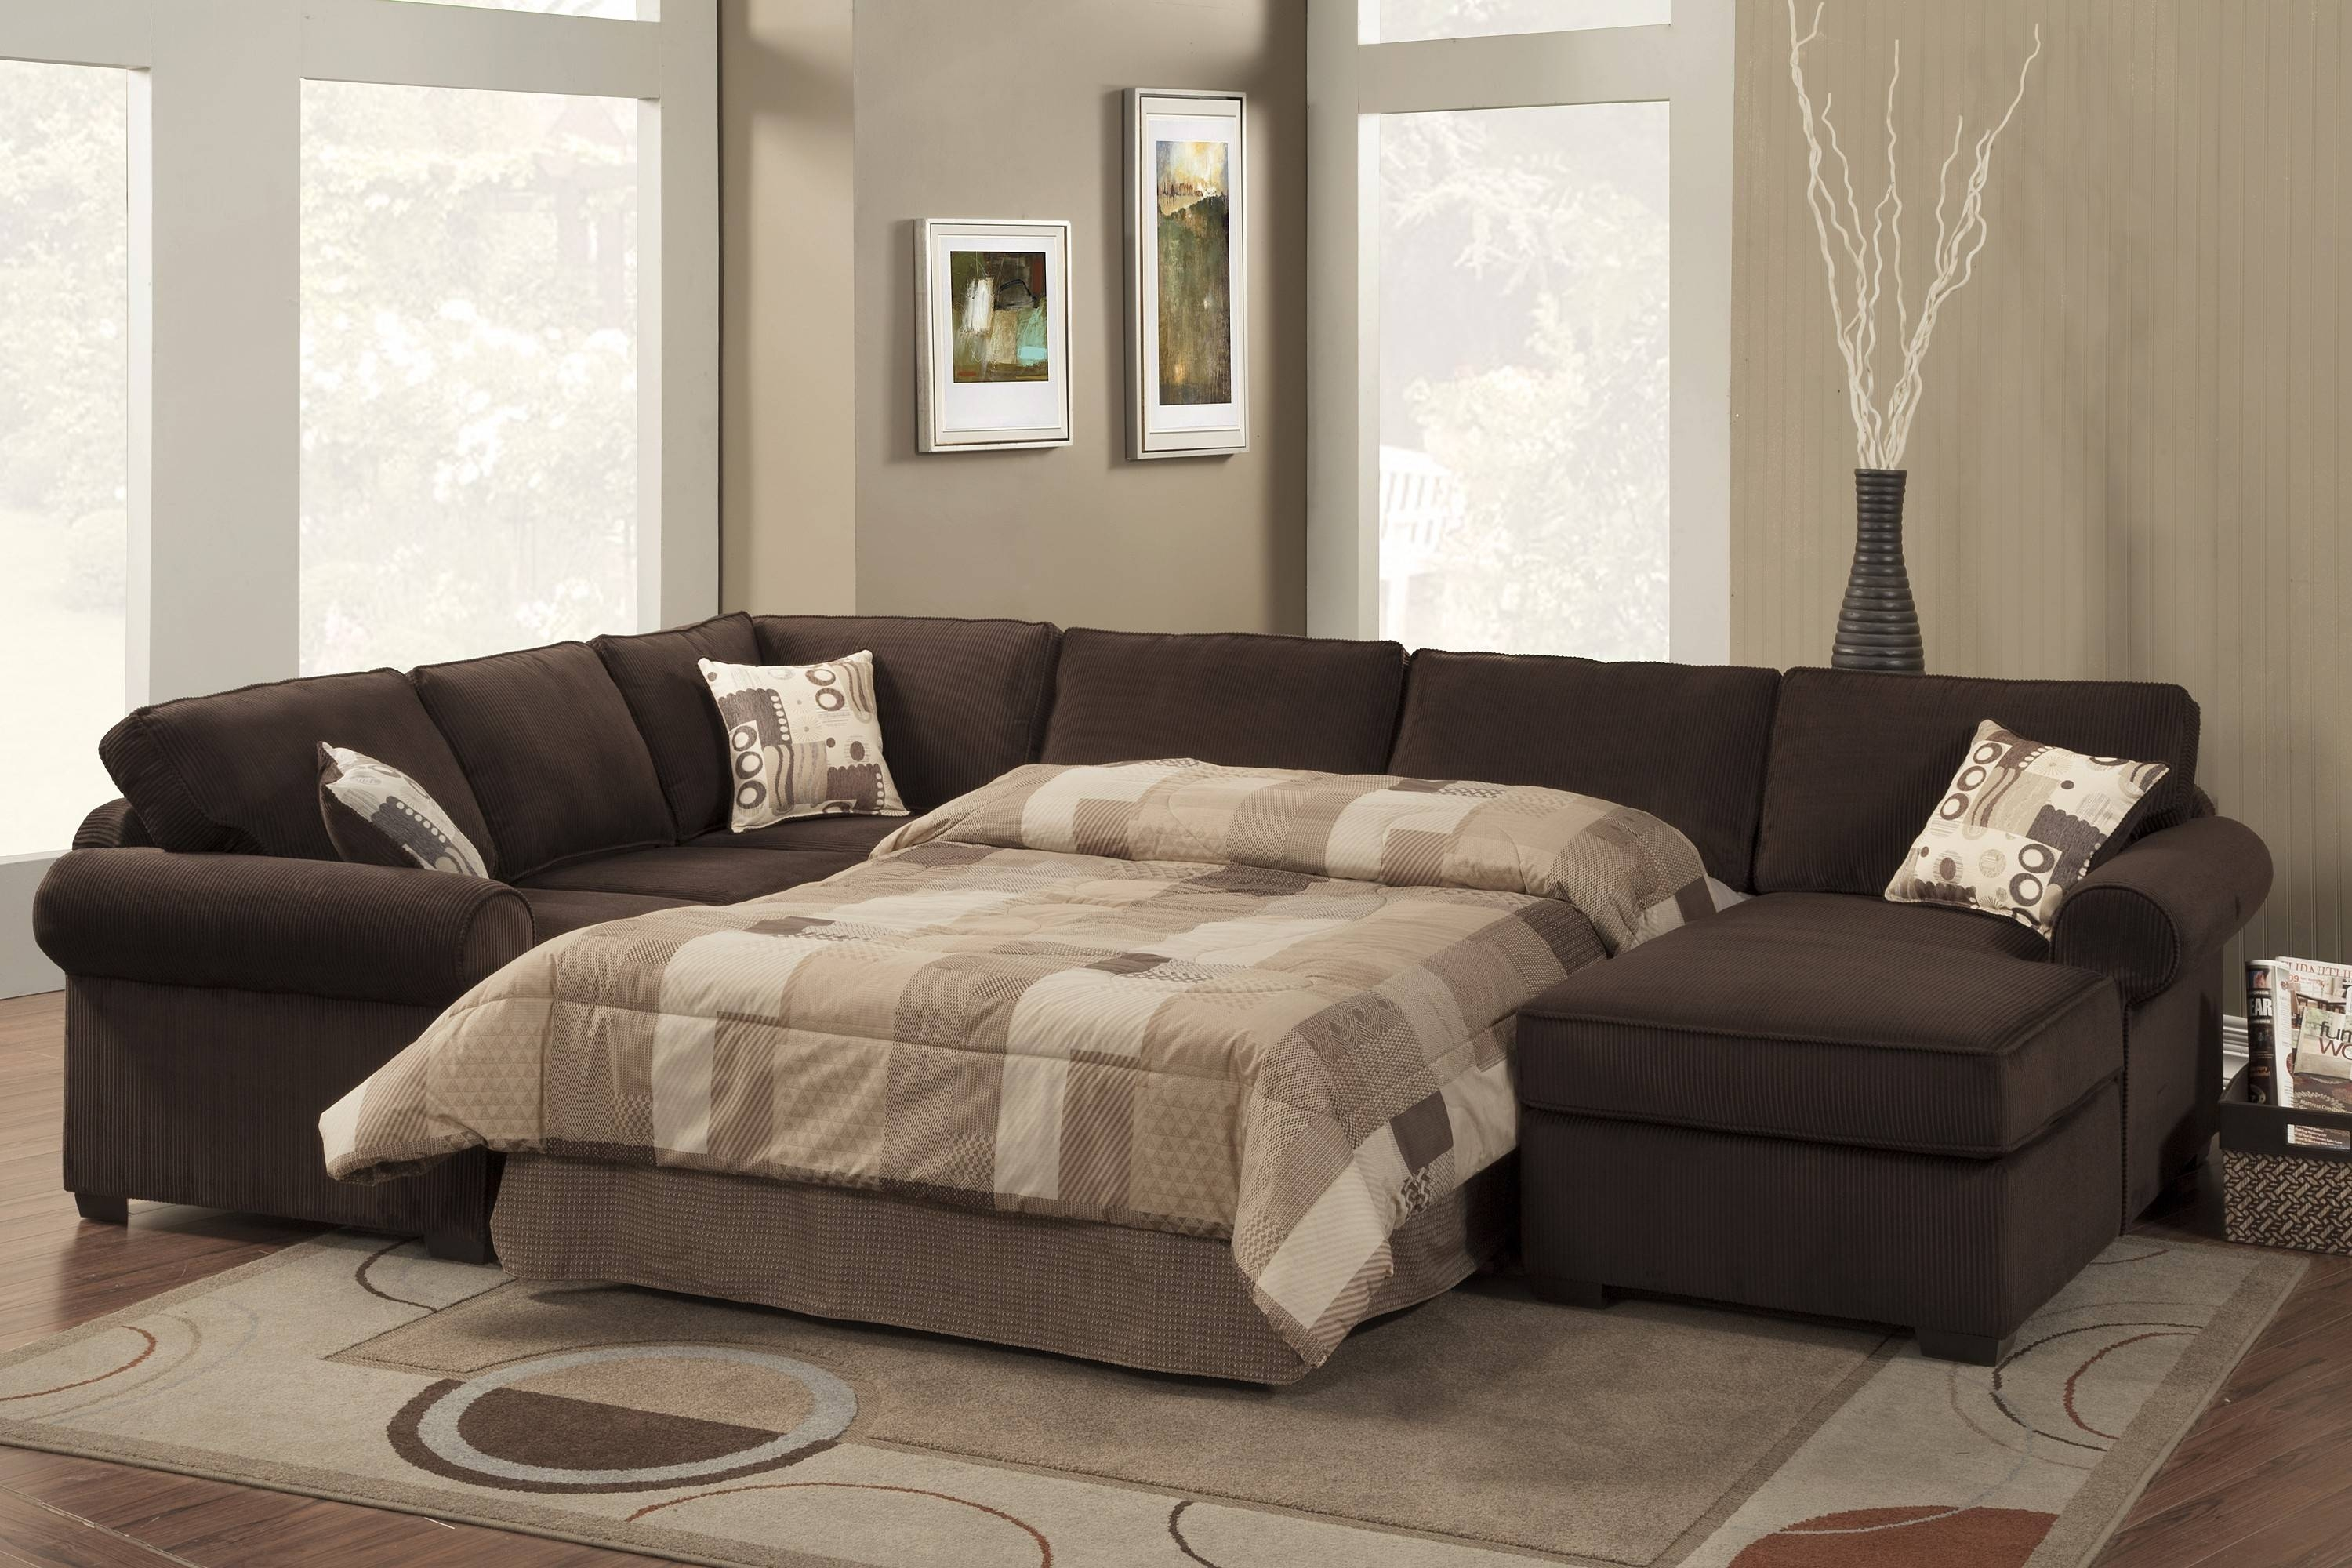 Sectional Sofas With Sleeper Bed - Ansugallery with Sectional Sofas Portland (Image 25 of 30)